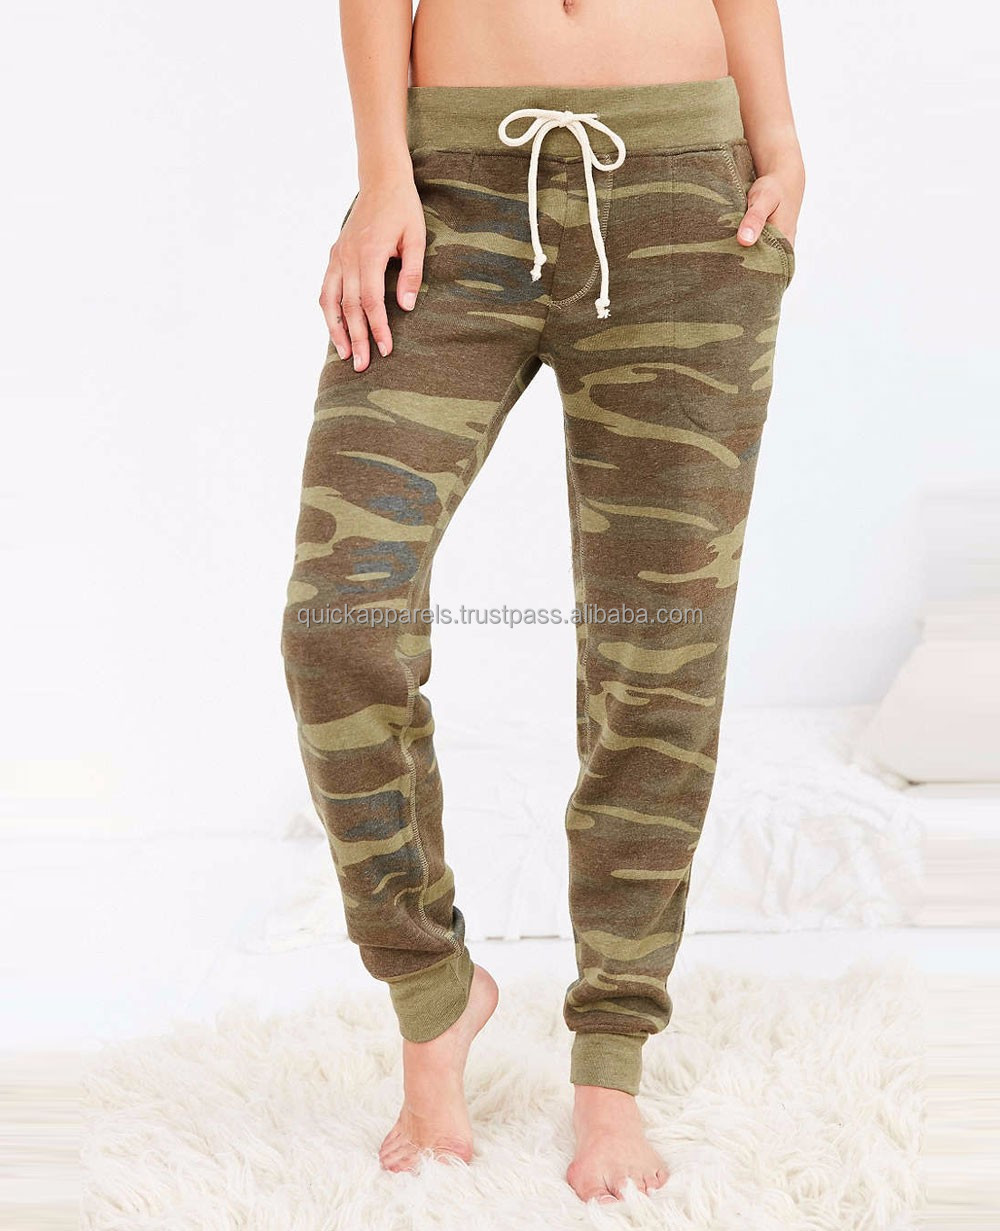 hot selling french terry sweatpants ,hot sale sweatpants gym pants cheap ,sweatpants china